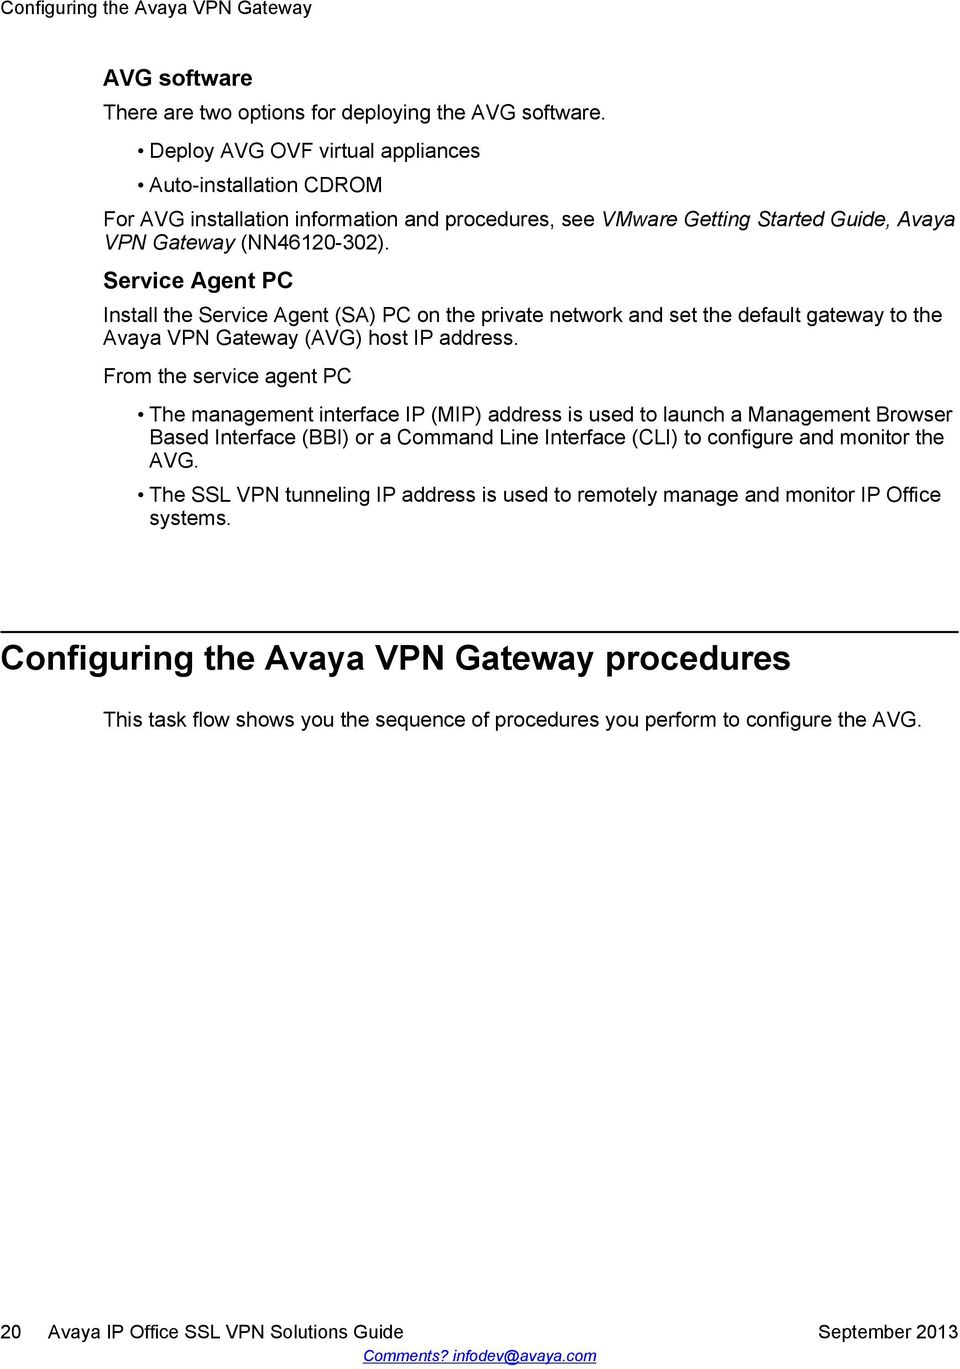 Service Agent PC Install the Service Agent (SA) PC on the private network and set the default gateway to the Avaya VPN Gateway (AVG) host IP address.